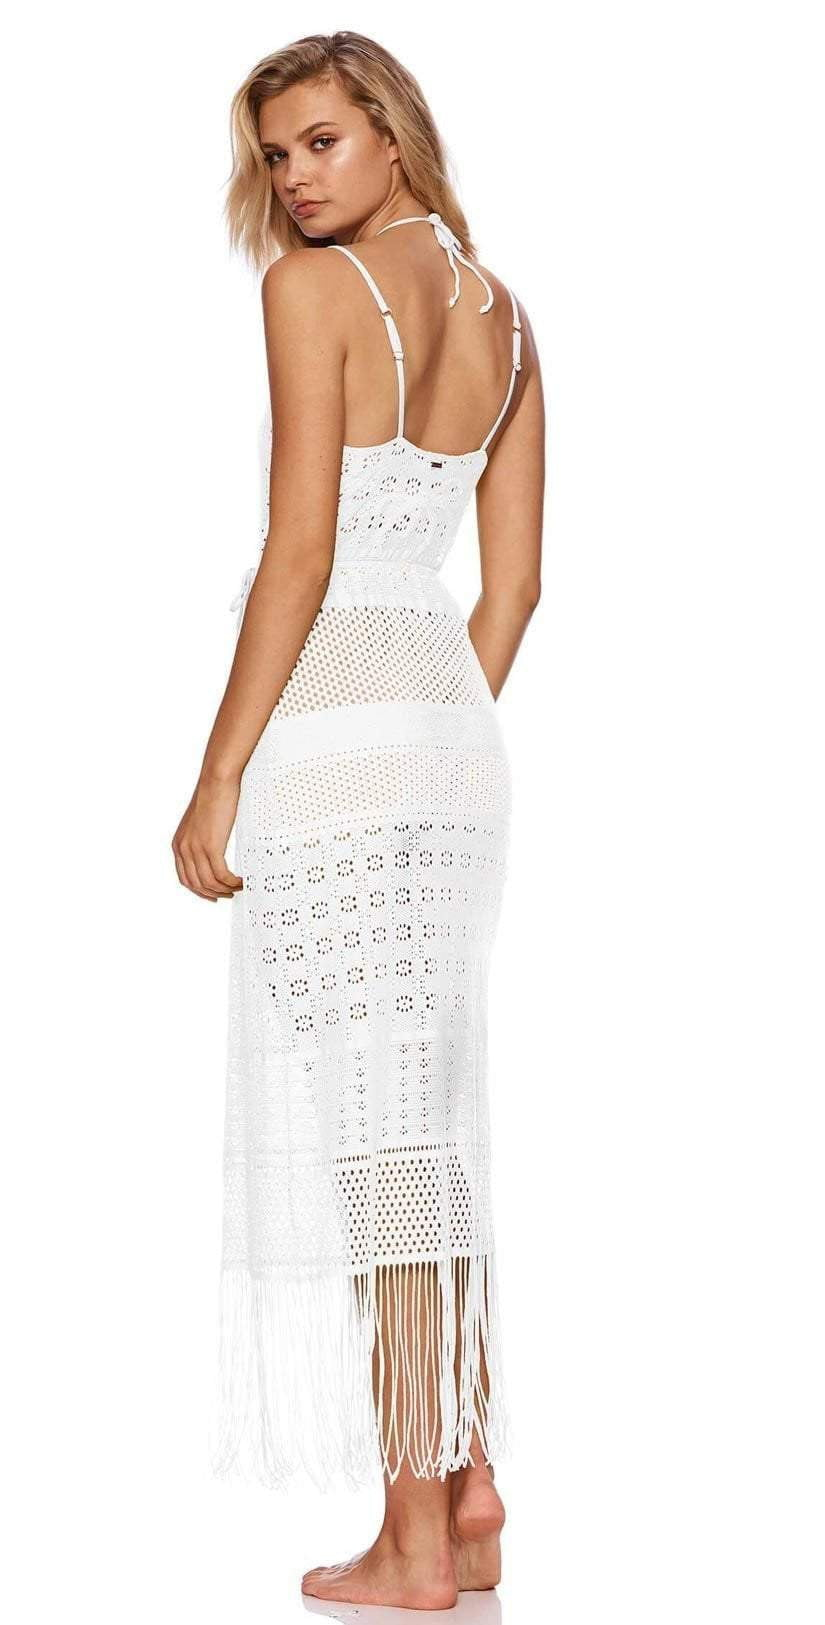 Beach Bunny Sienna Maxi Dress B19138C0 White: